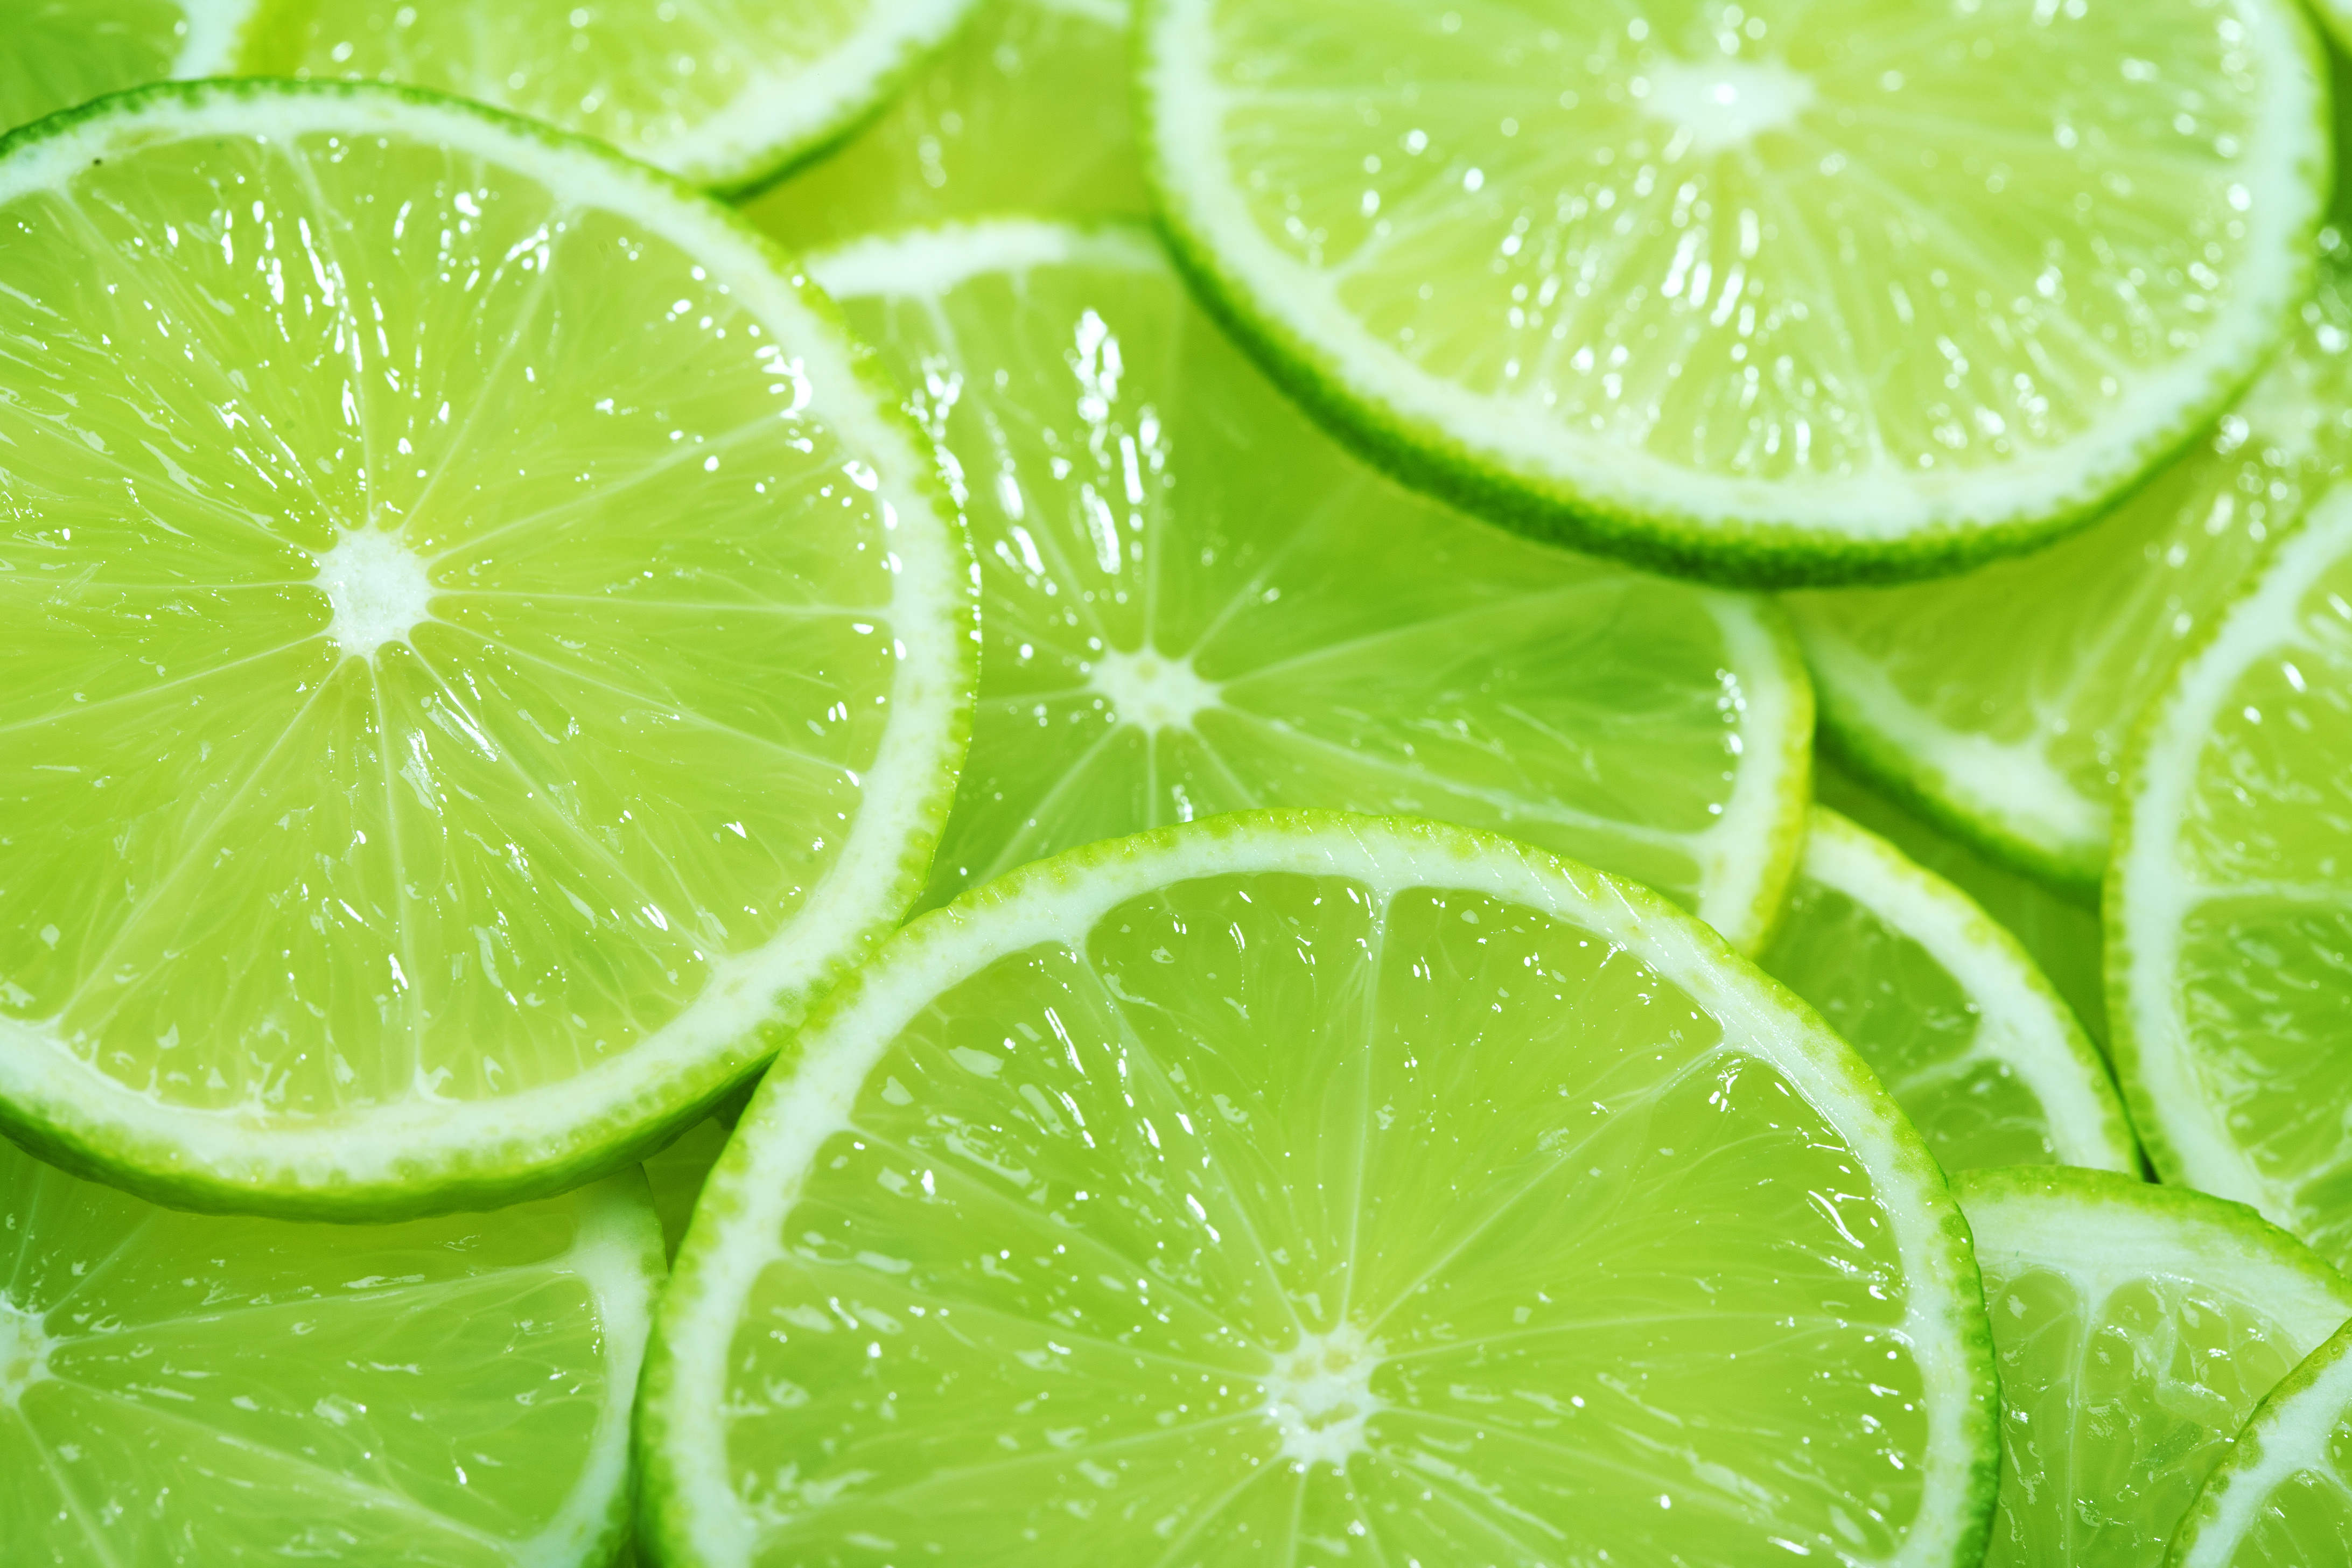 Sliced Limes Designer Splashback Cameo Glass